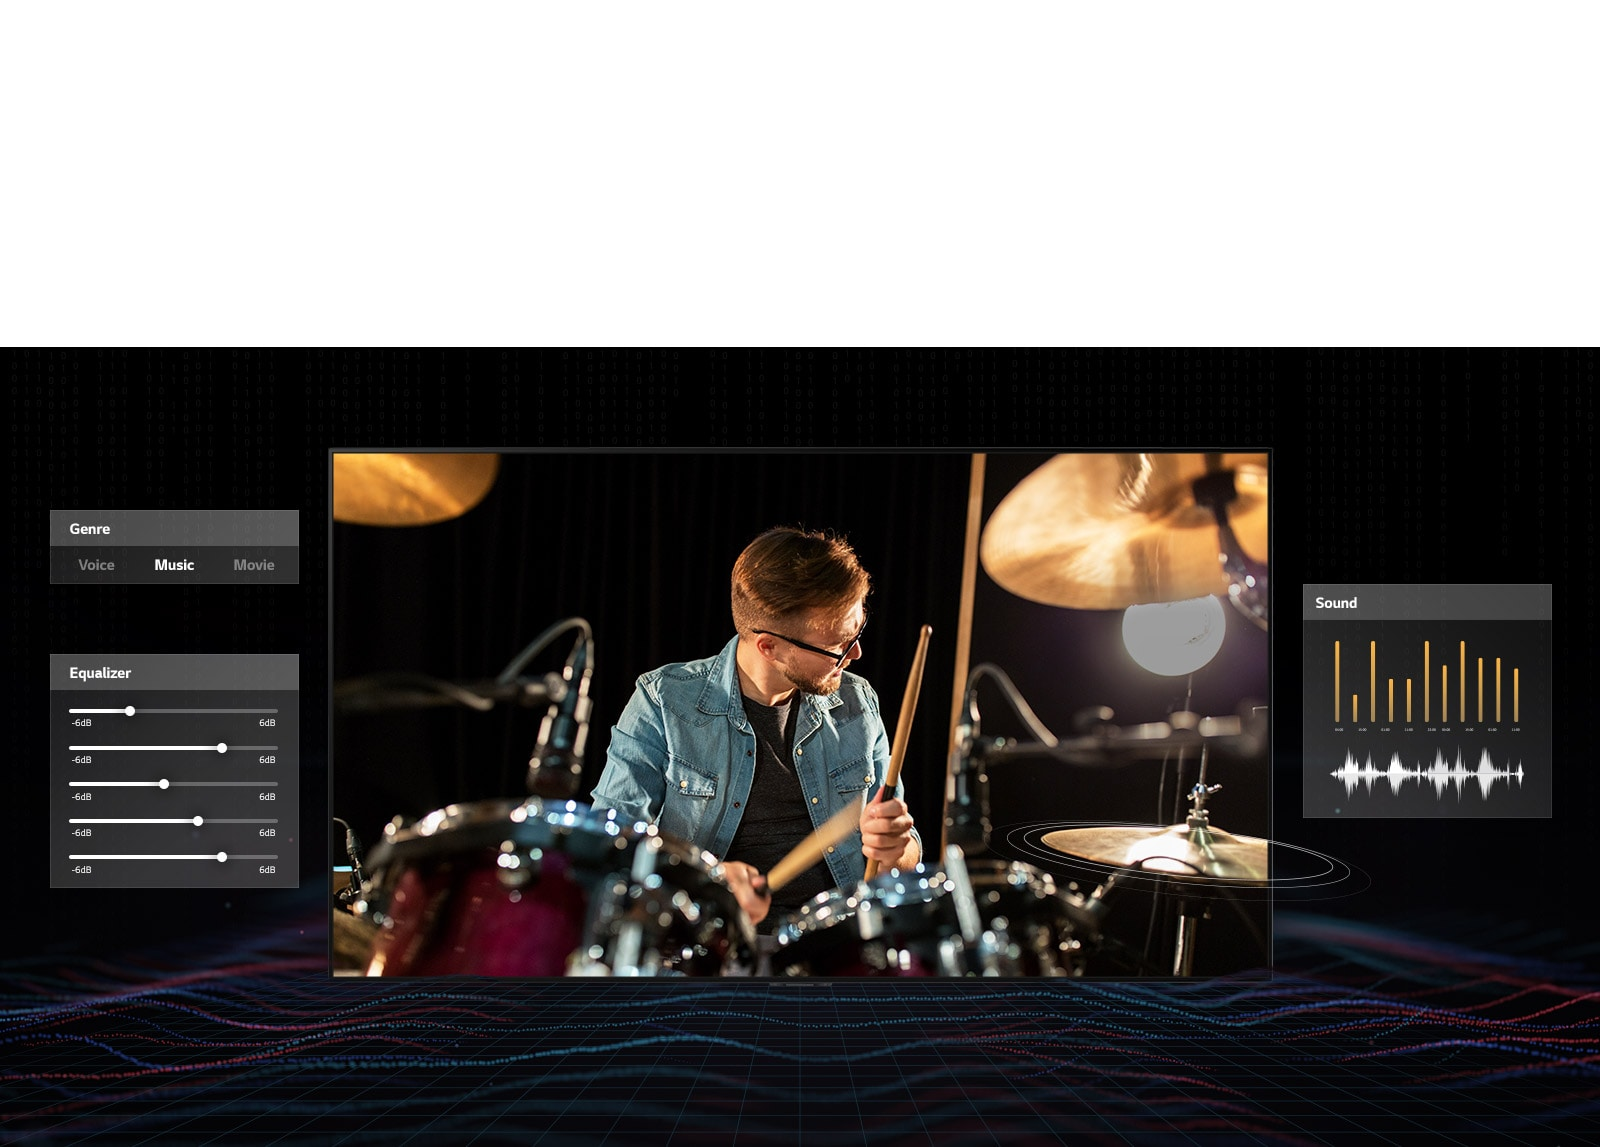 A man in glasses playing drums with music dashboard graphics on both sides